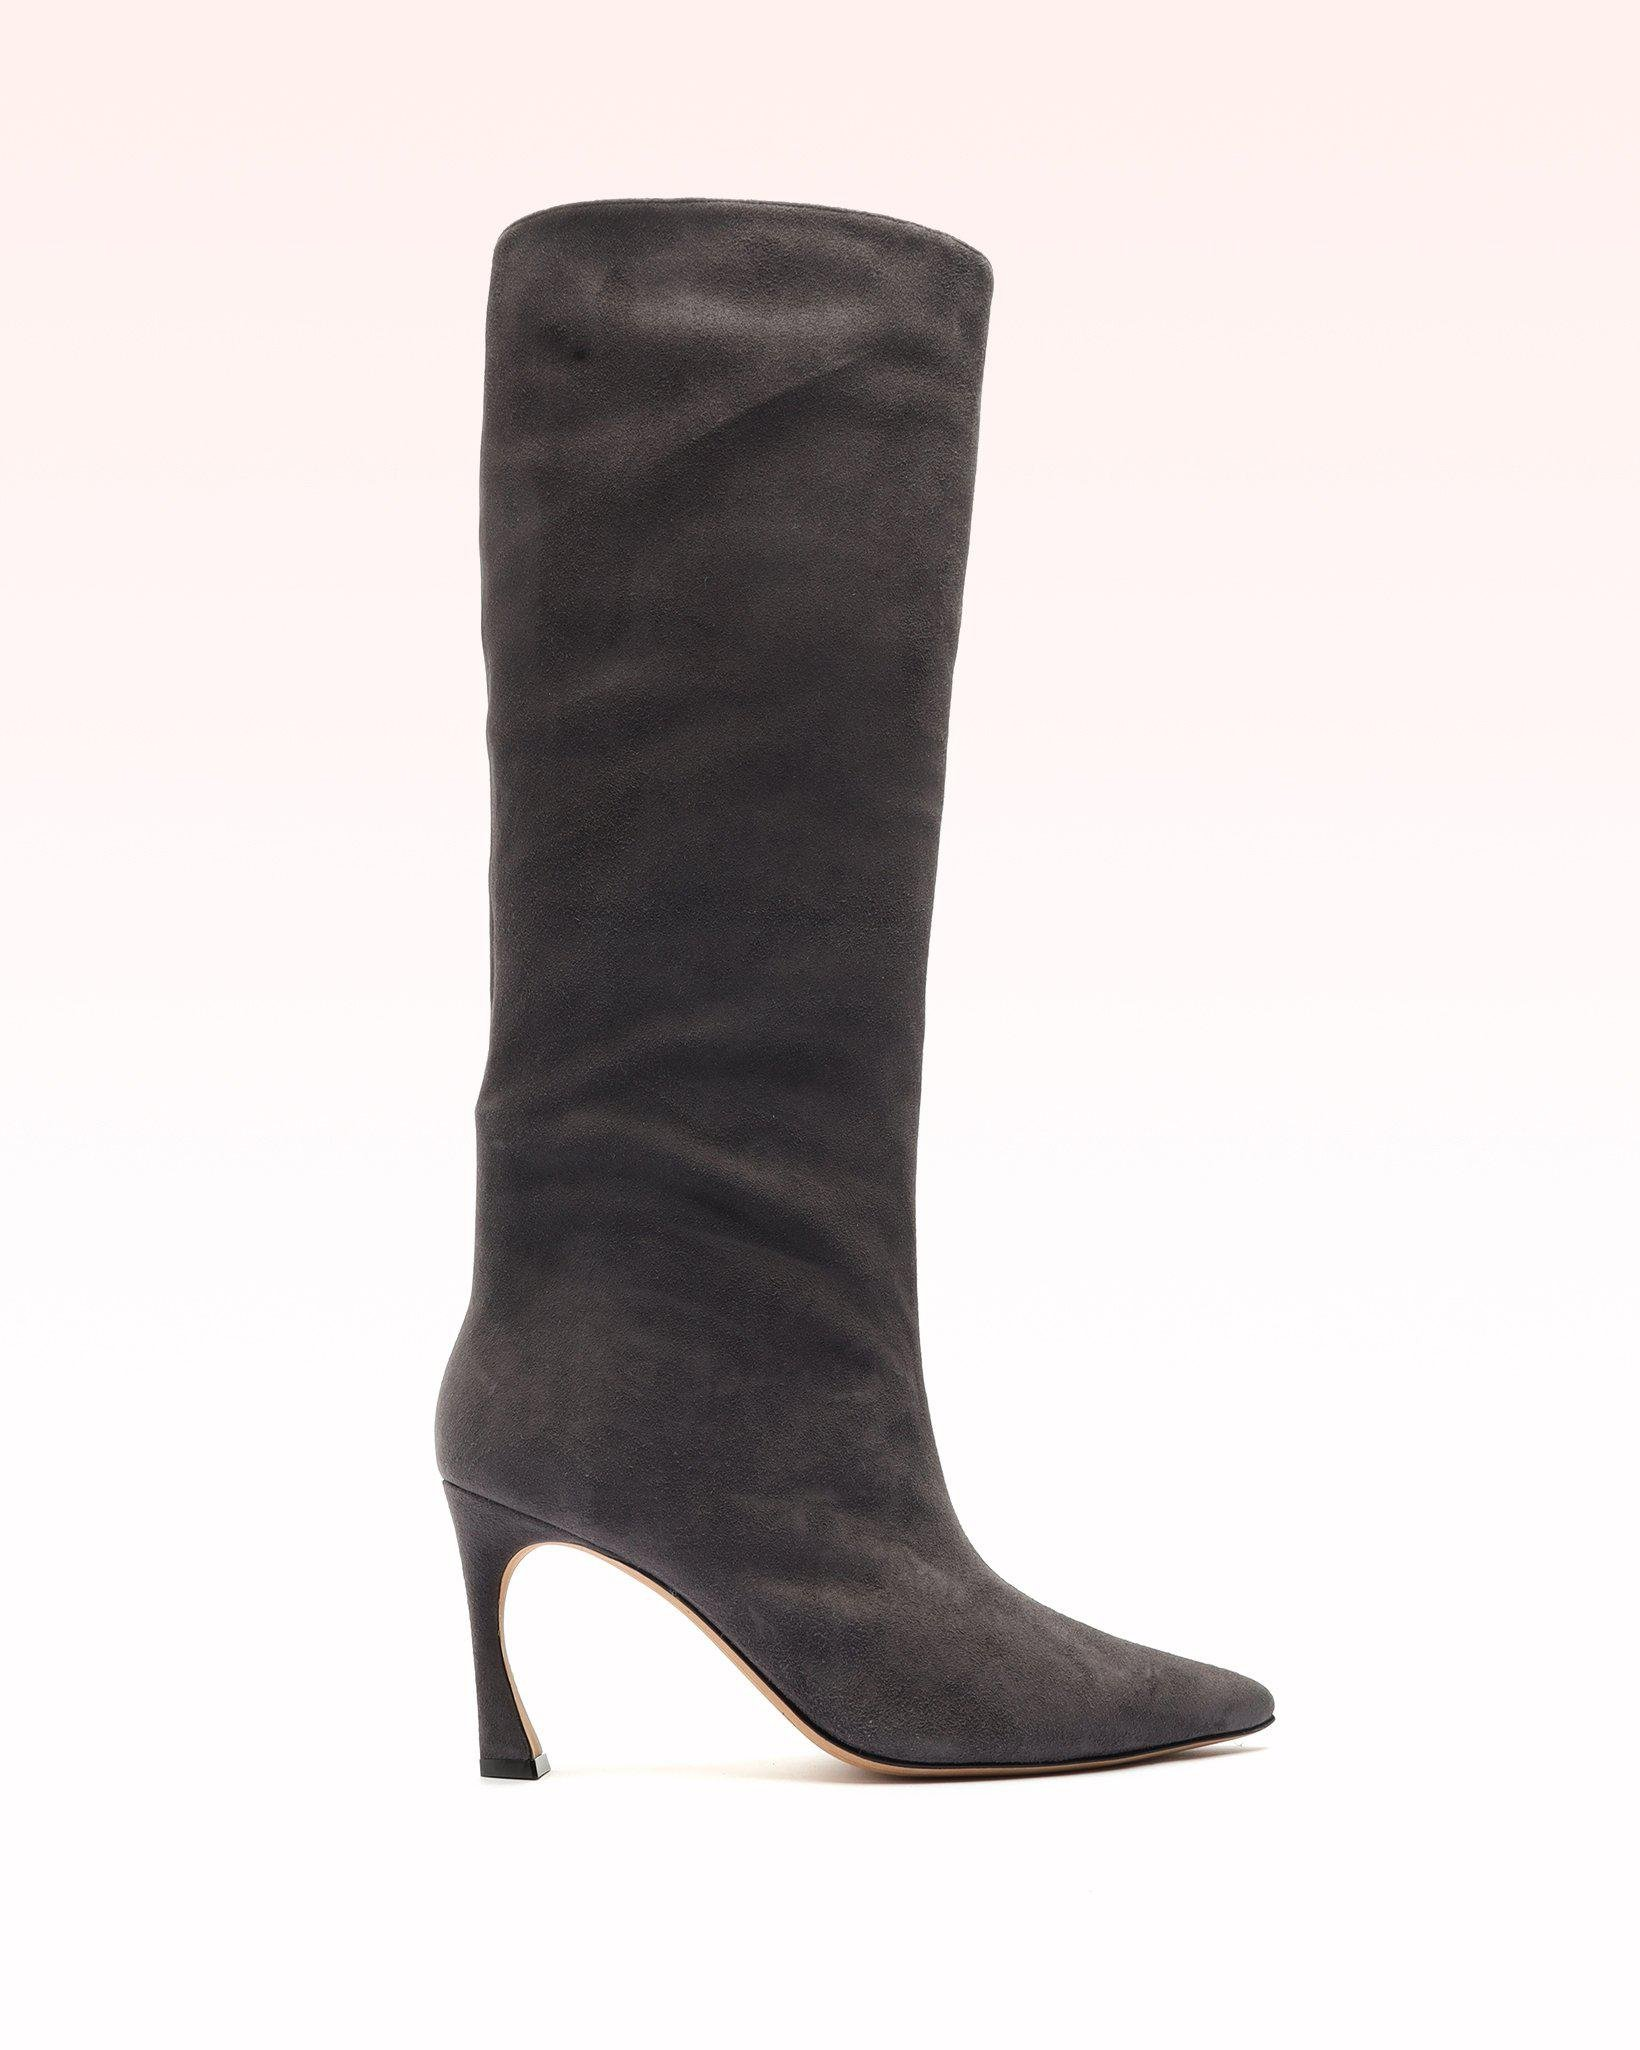 Kyra 85 Suede Boot